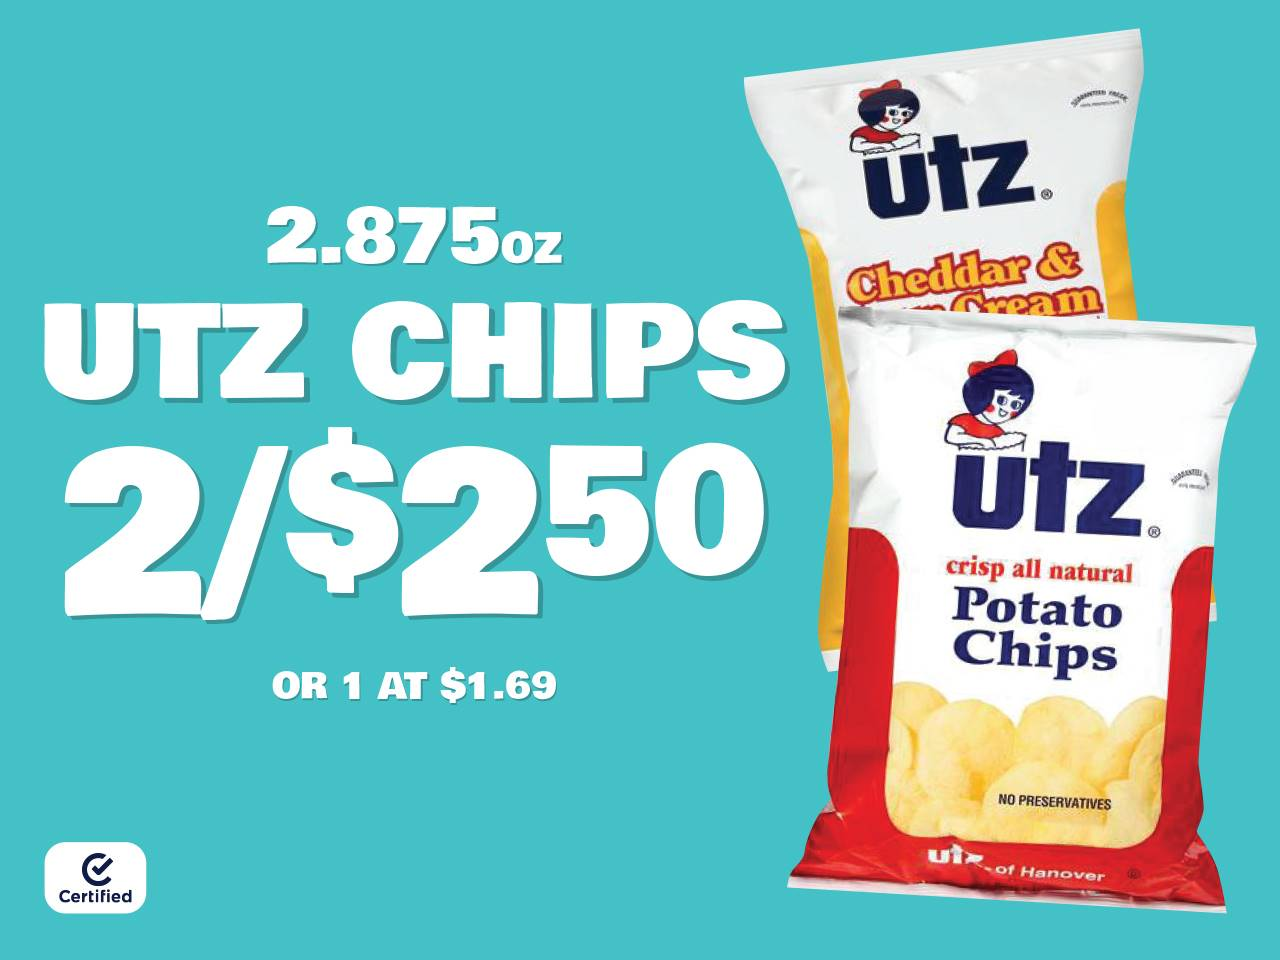 2.875oz Utz Chips 2 for $2.50 or 1 at $1.69